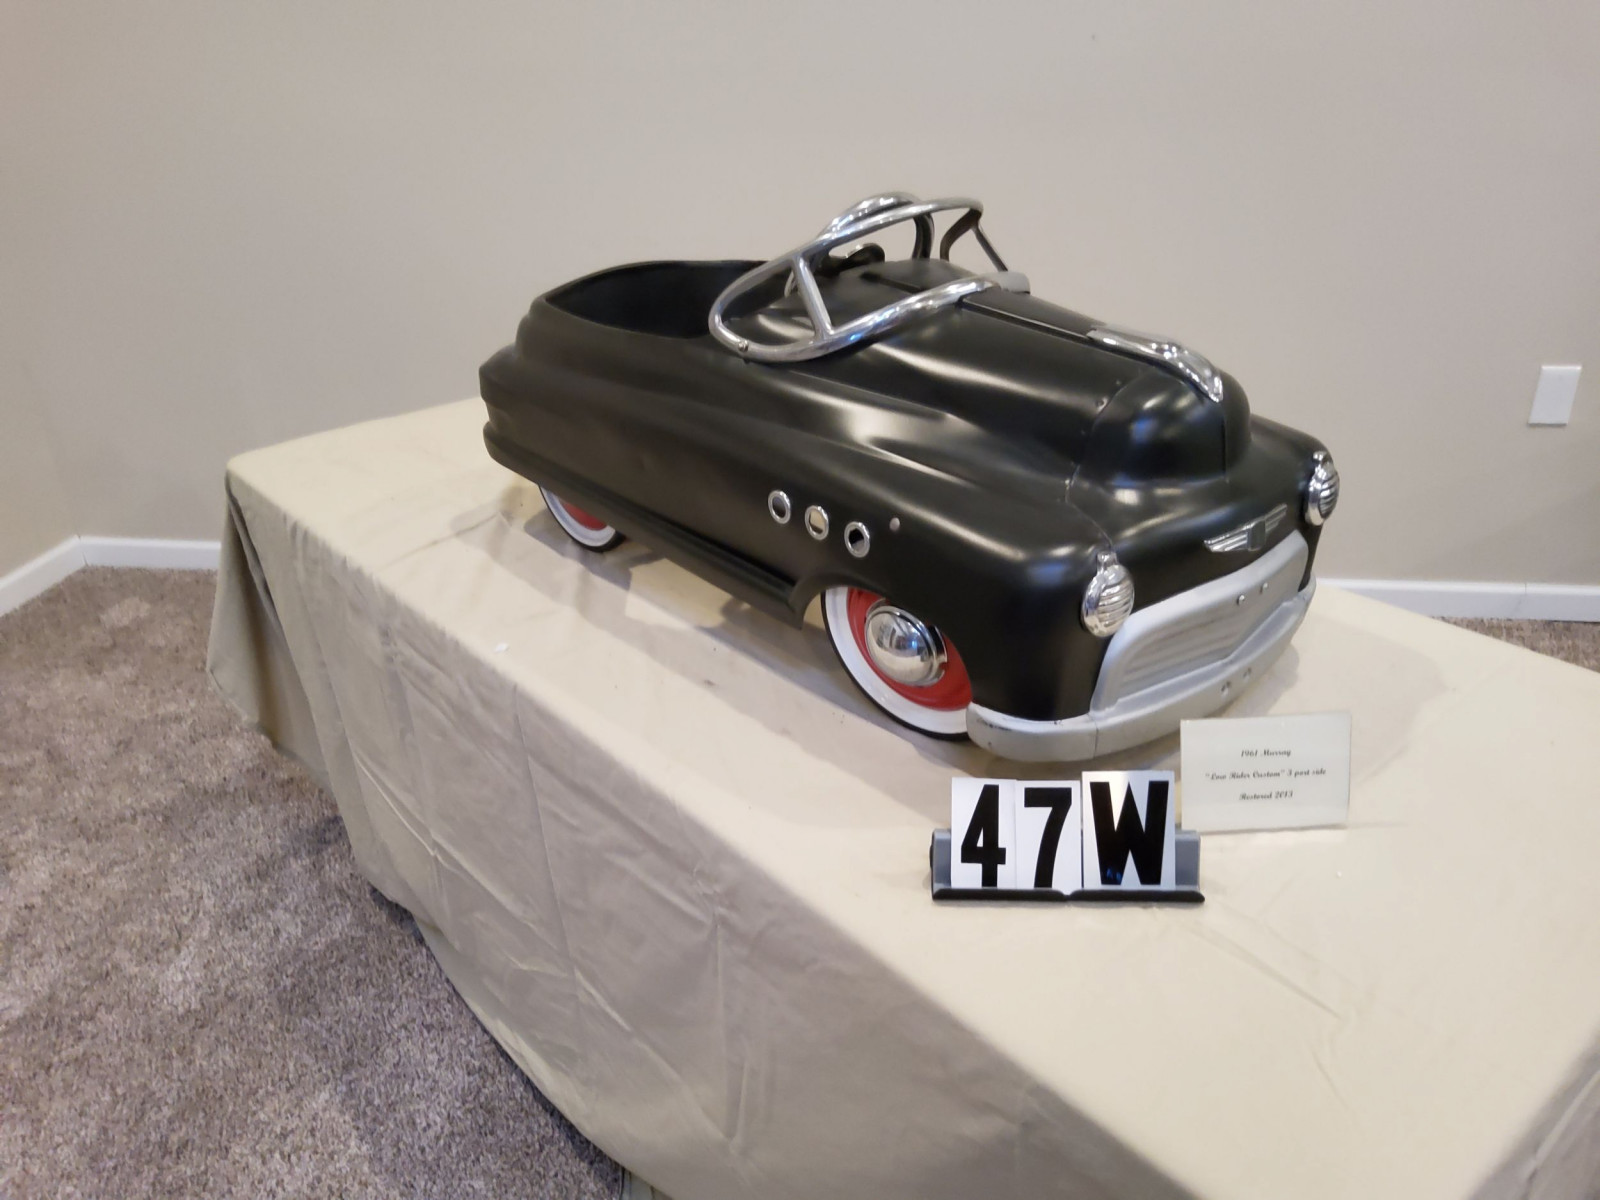 1961 Murray Low Rider Custom Pedal Car - Image 1